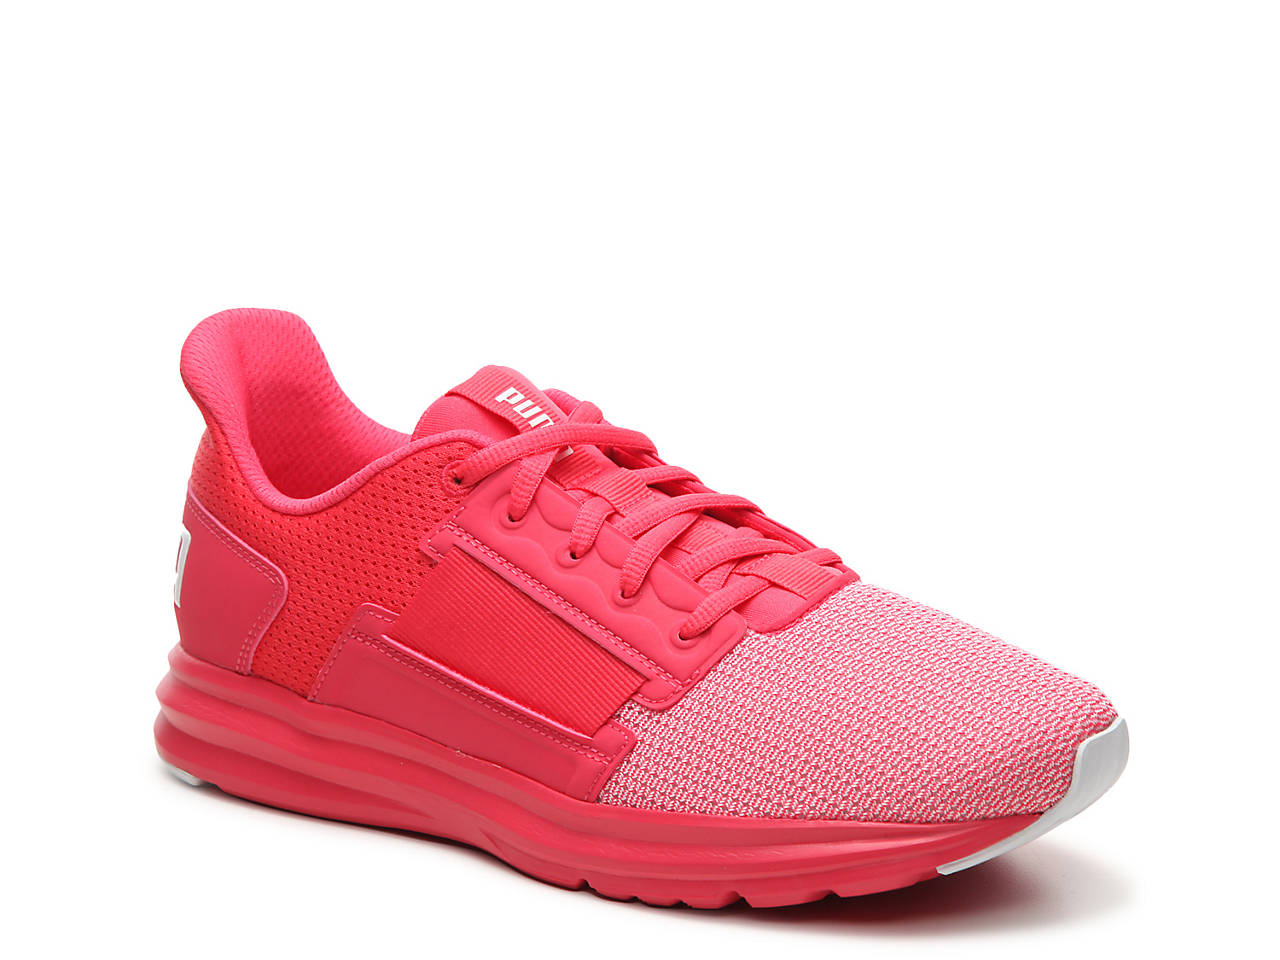 Puma Enzo Street Lightweight Training Shoe - Women s Women s Shoes  cc01a90d4